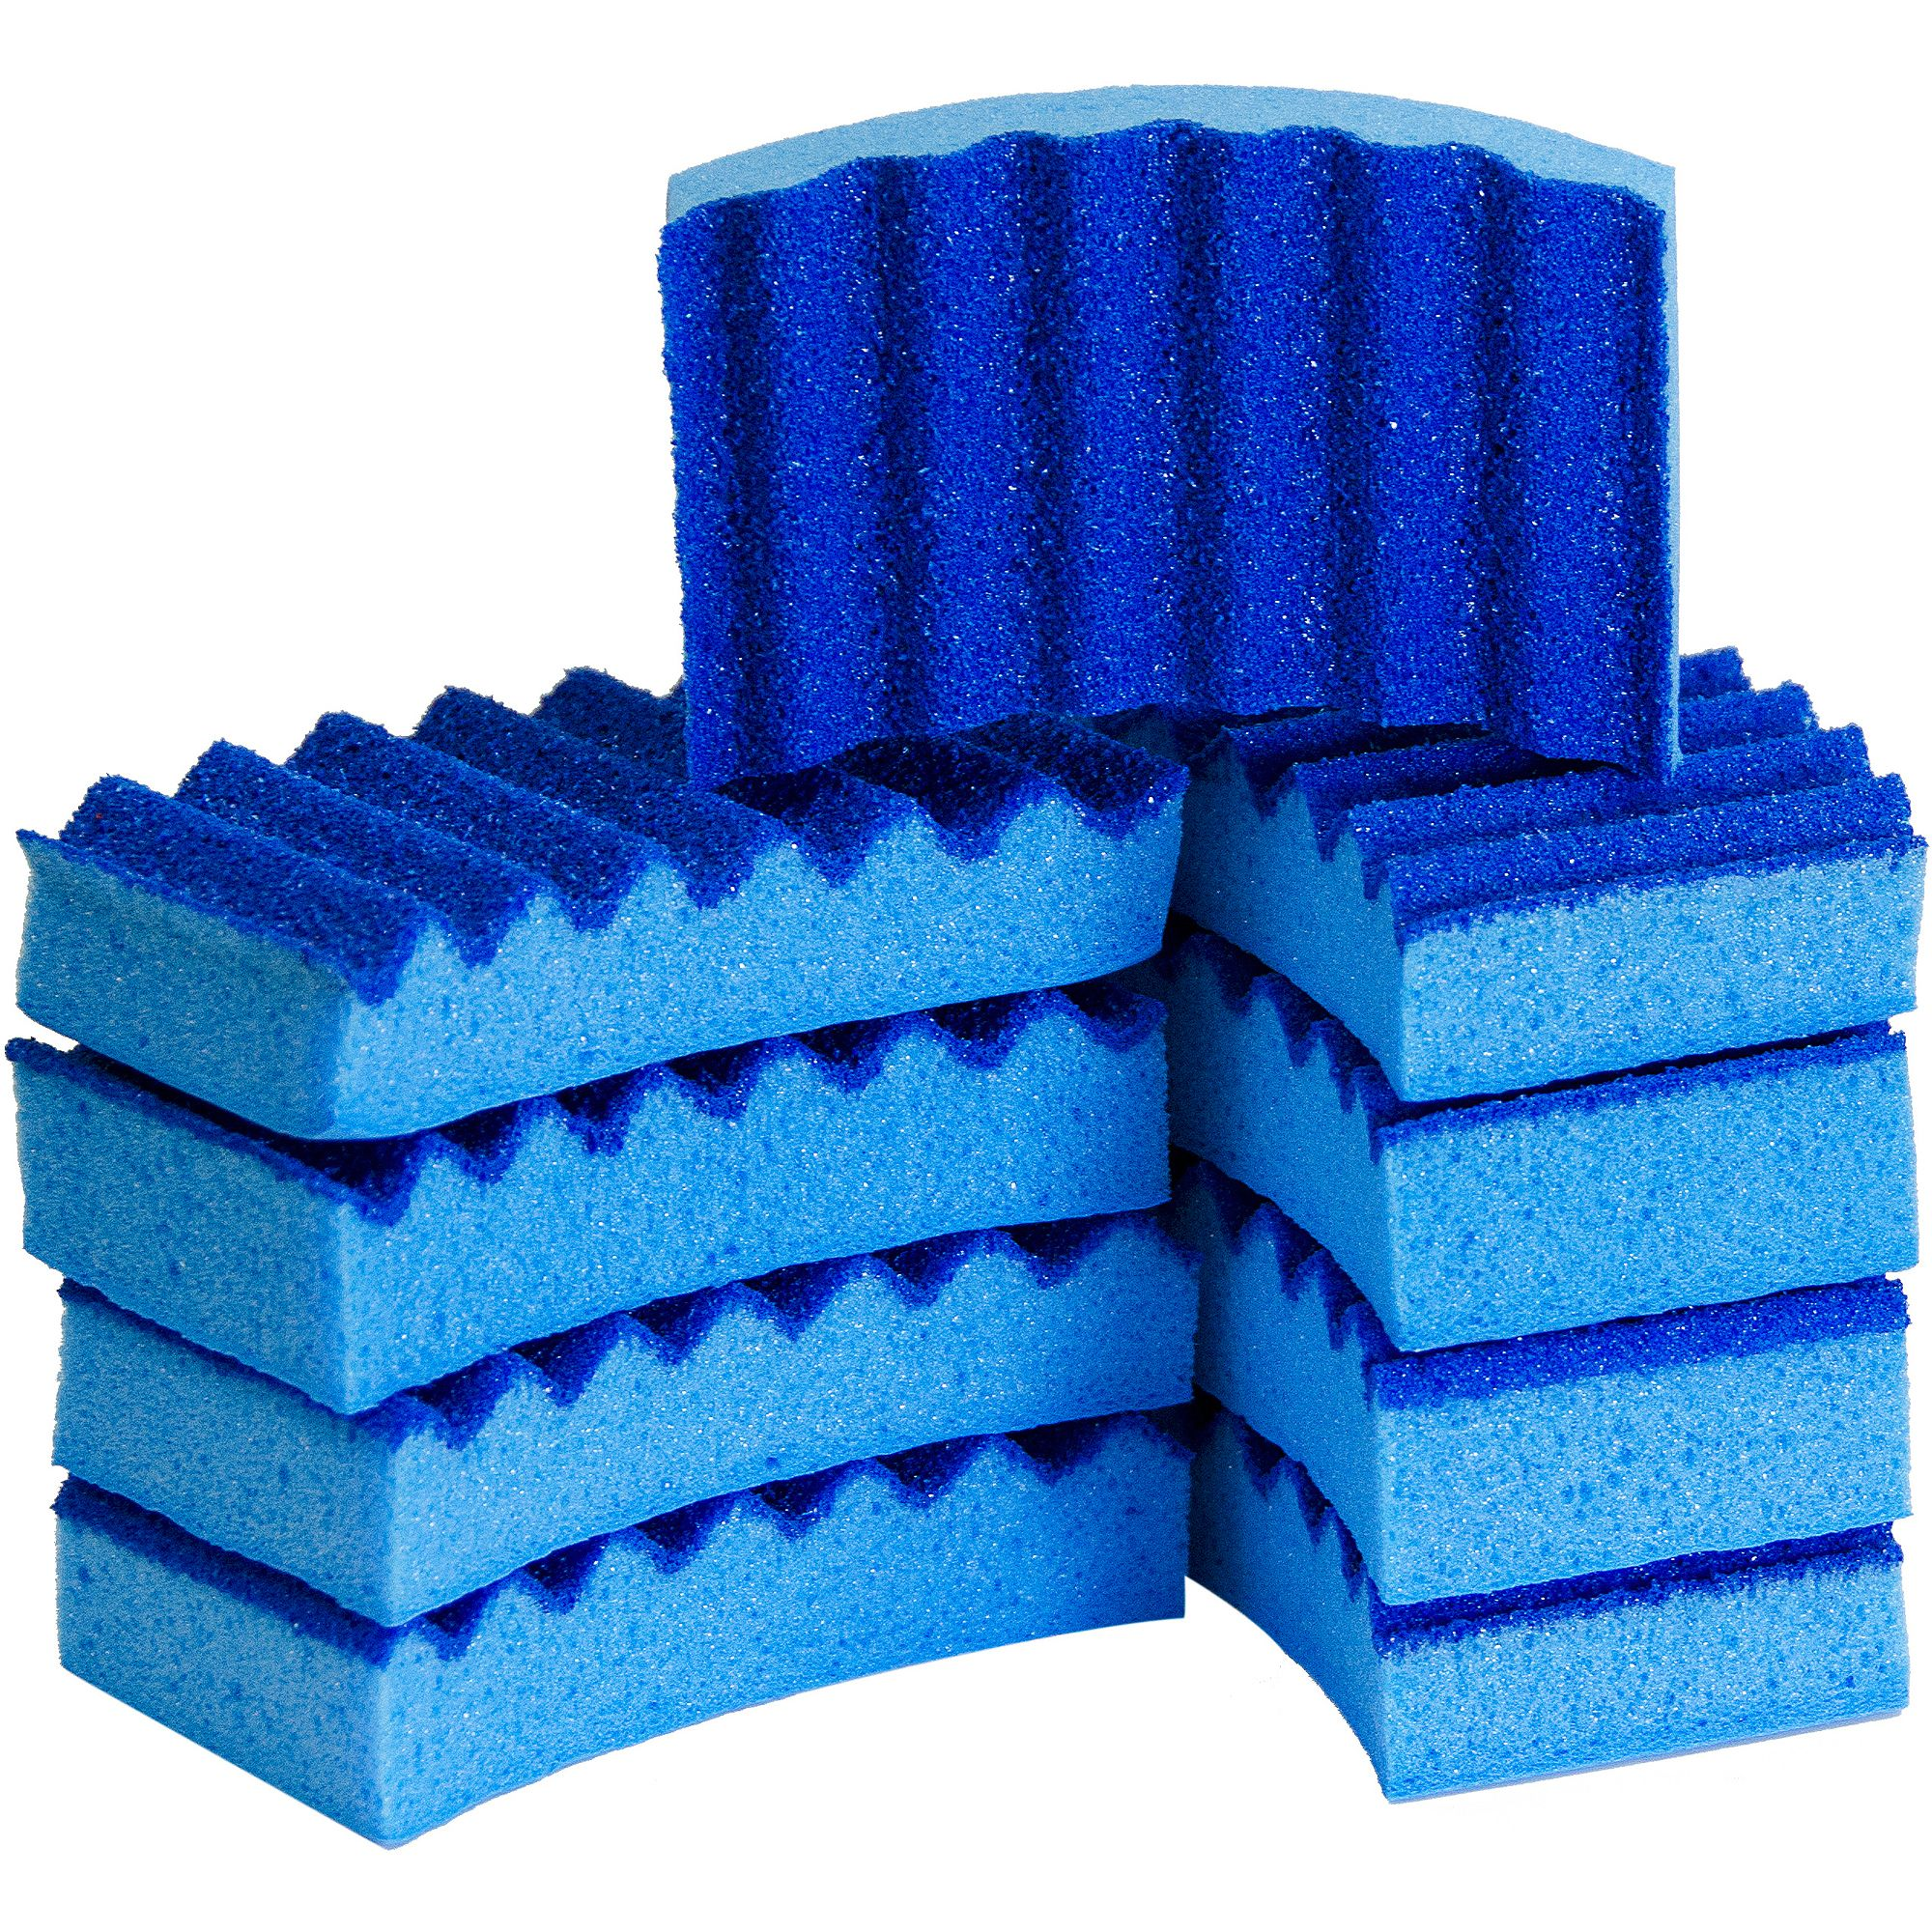 Lysol Antimicrobial Multi-Purpose Scrubber Sponges, 9 count